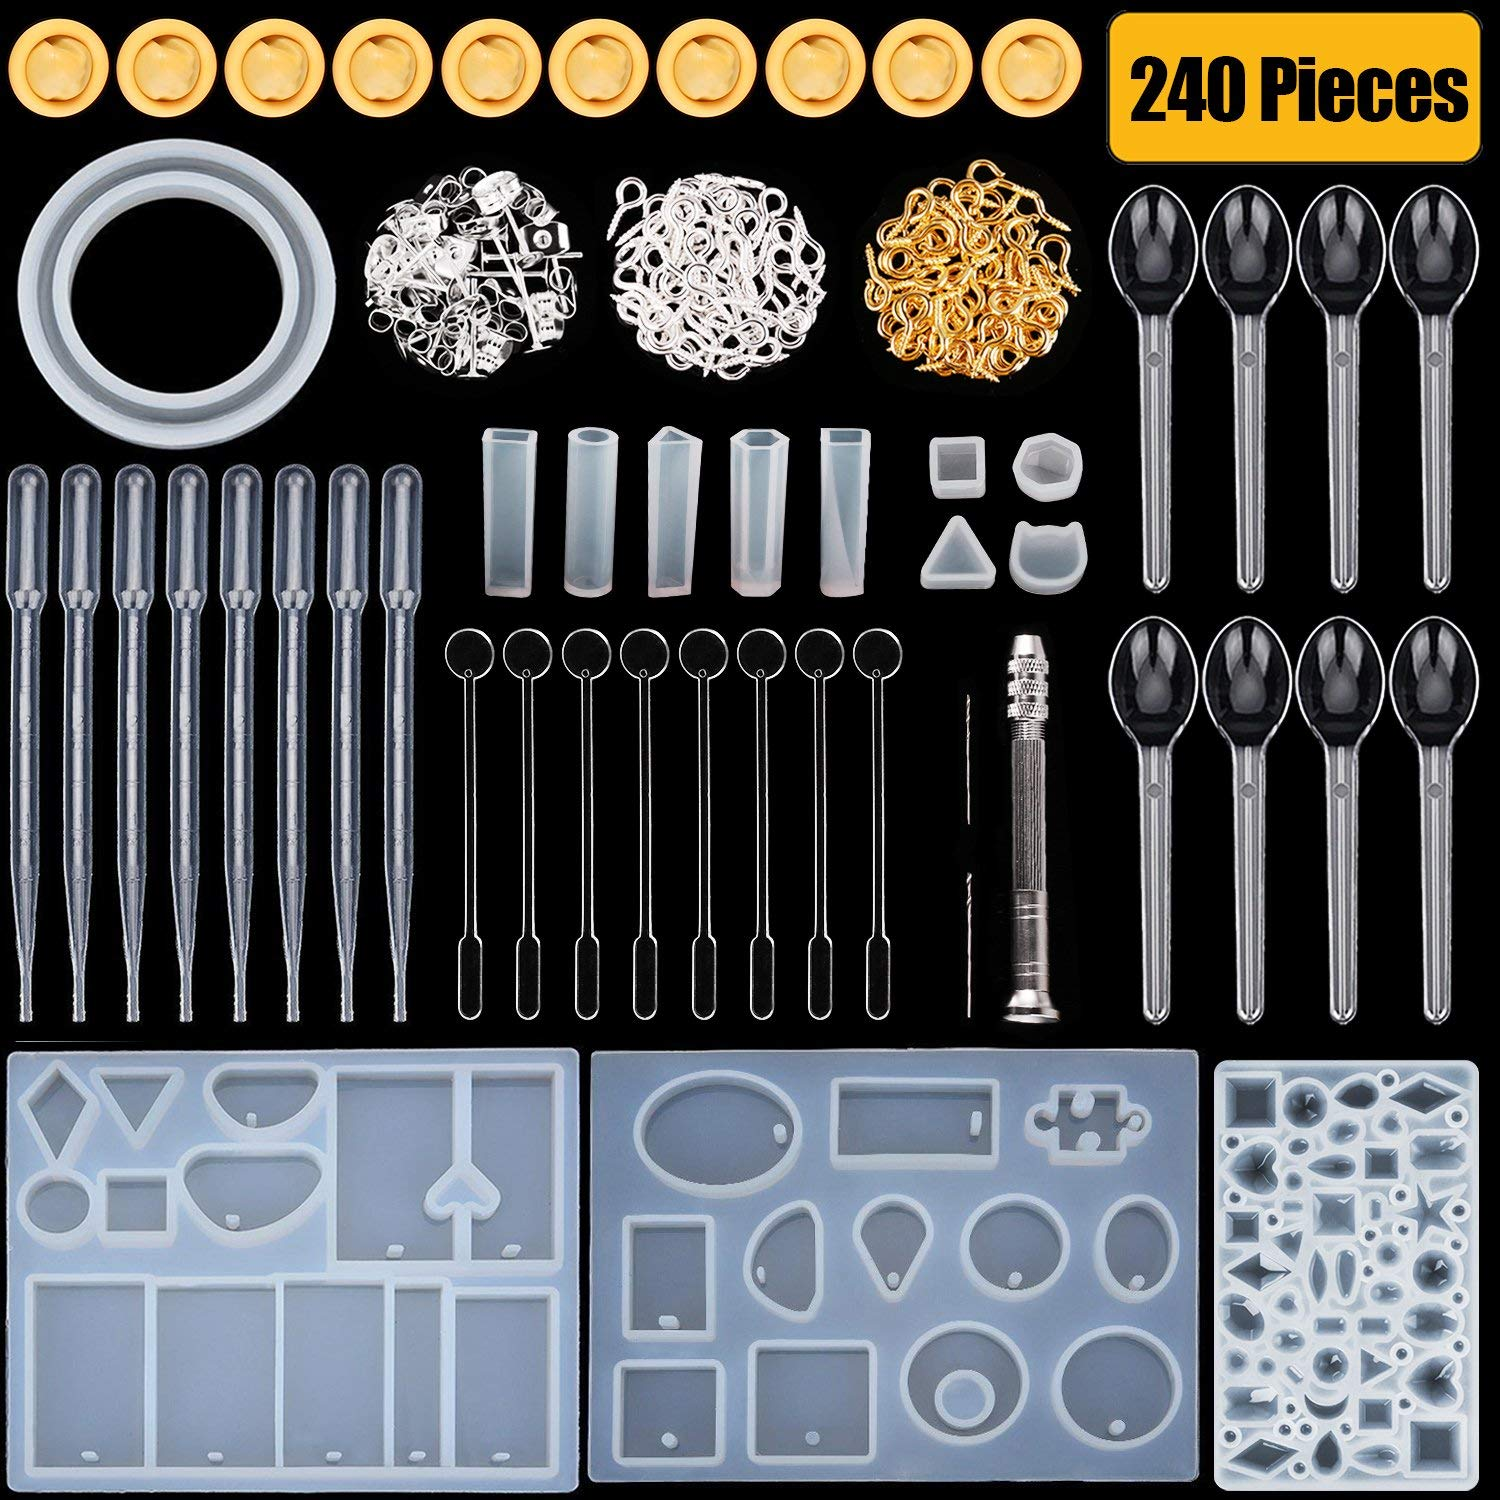 HTKstore Silicone Resin Molds Resin Casting Molds with Stirrers, Droppers, Spoons, Finger Cots,Hand Twist Drill and Screw Eye Pins, 240 Pieces Totally